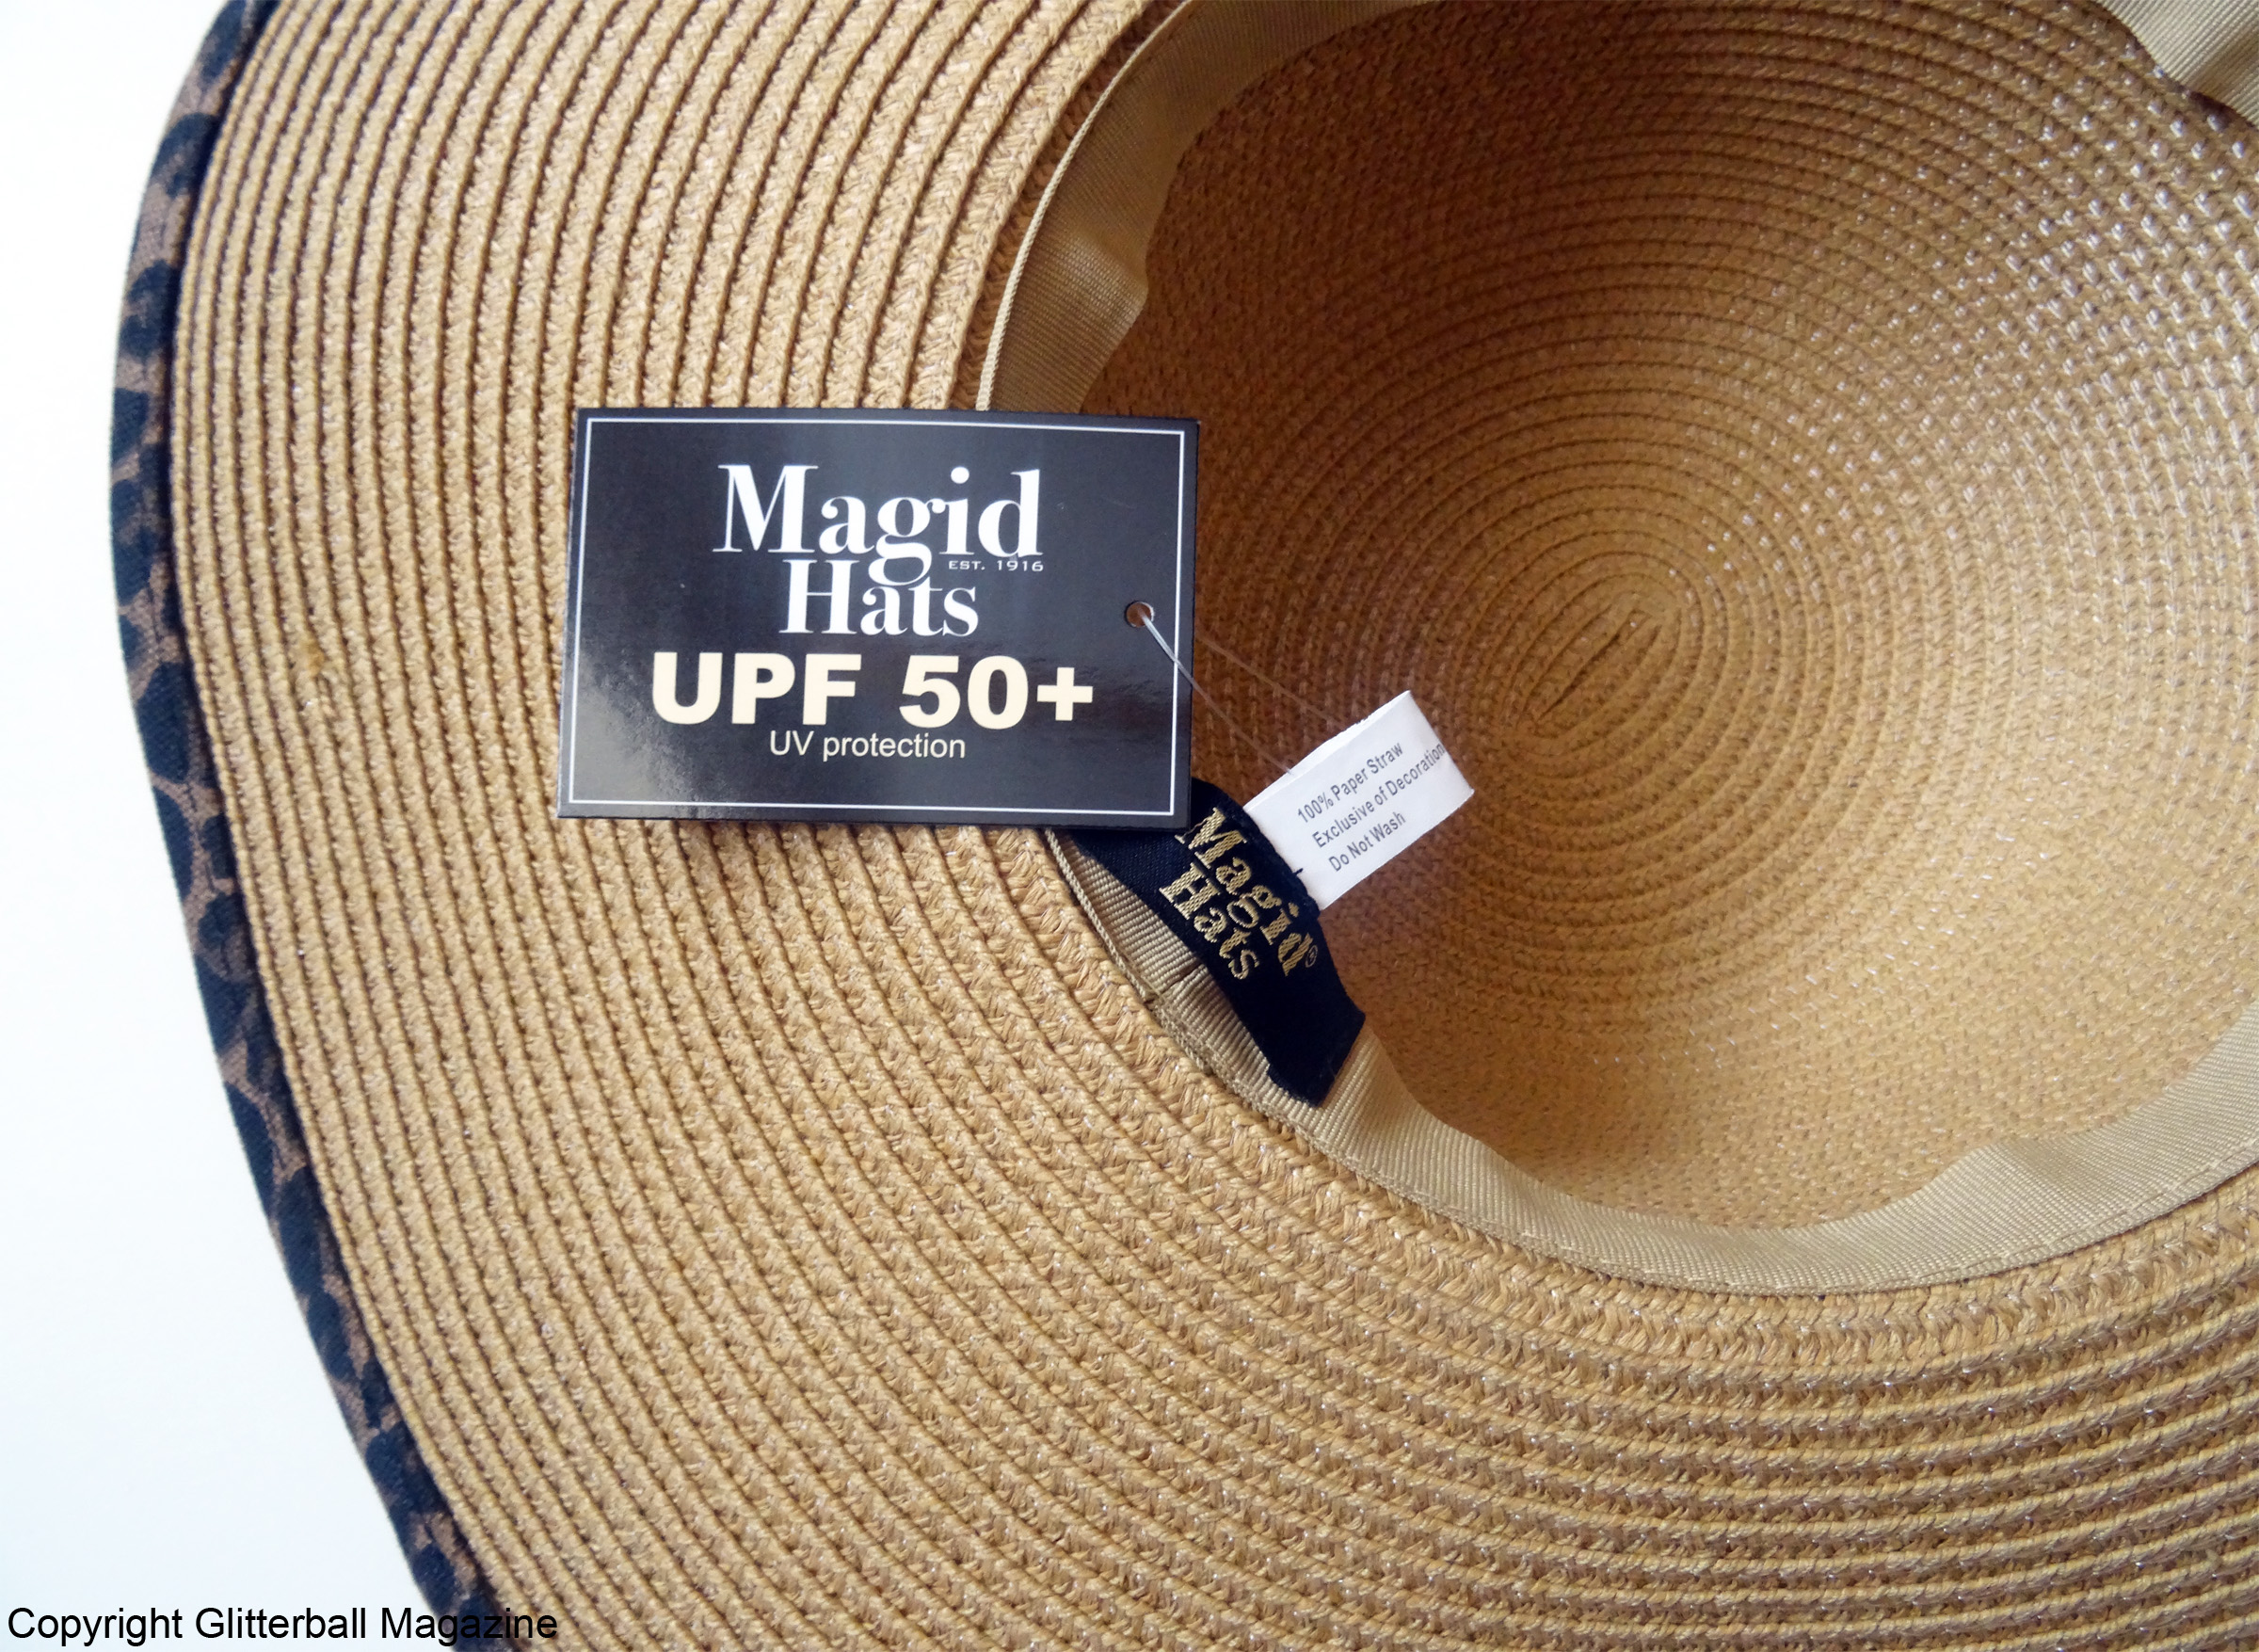 UPF SUN HATS FROM MAGID HATS - Glitterball Magazine 4e5ad082ef2